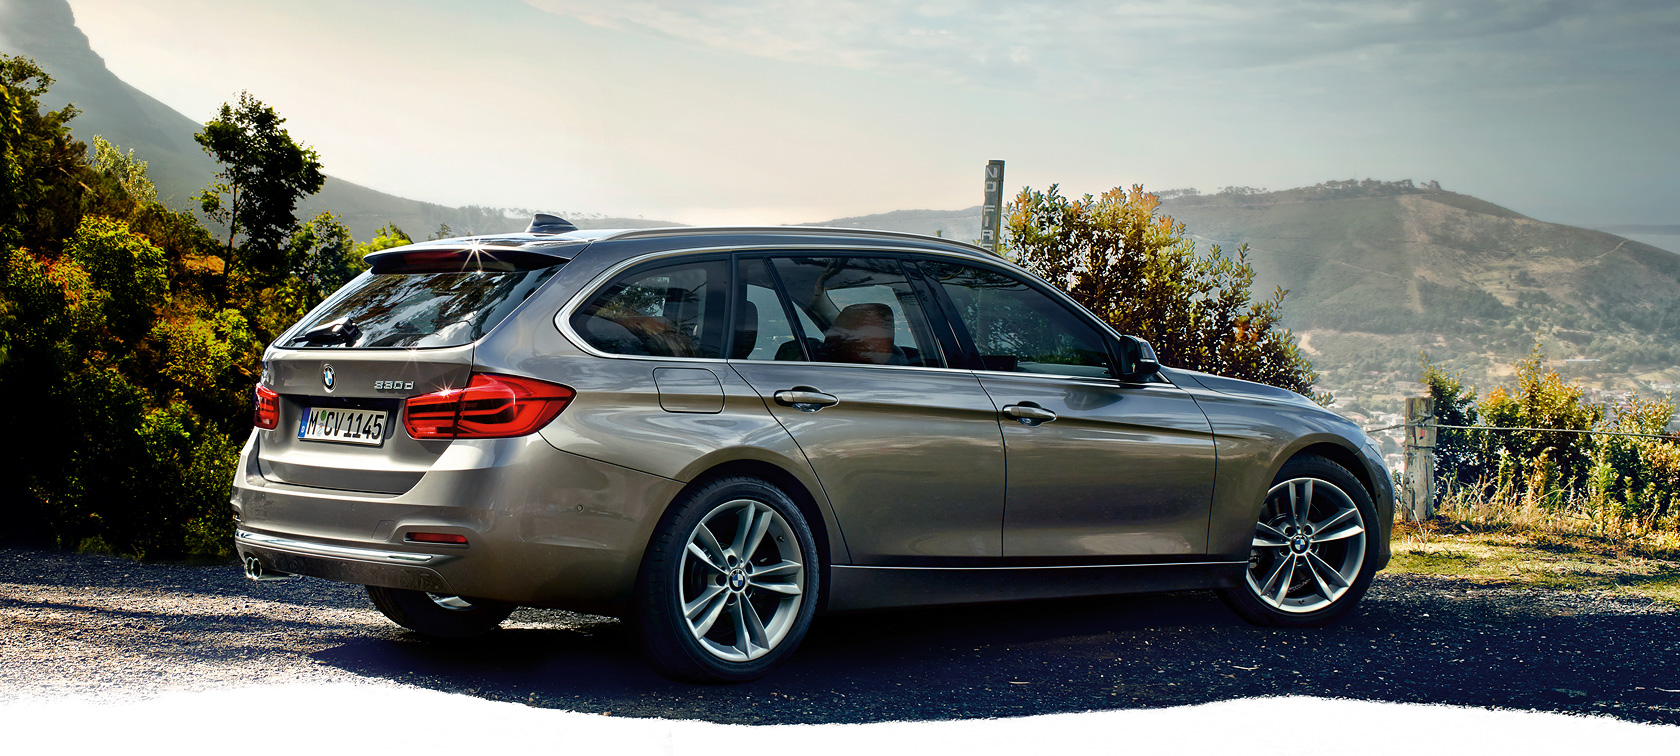 bmw s rie 3 touring style et design bmw canada. Black Bedroom Furniture Sets. Home Design Ideas